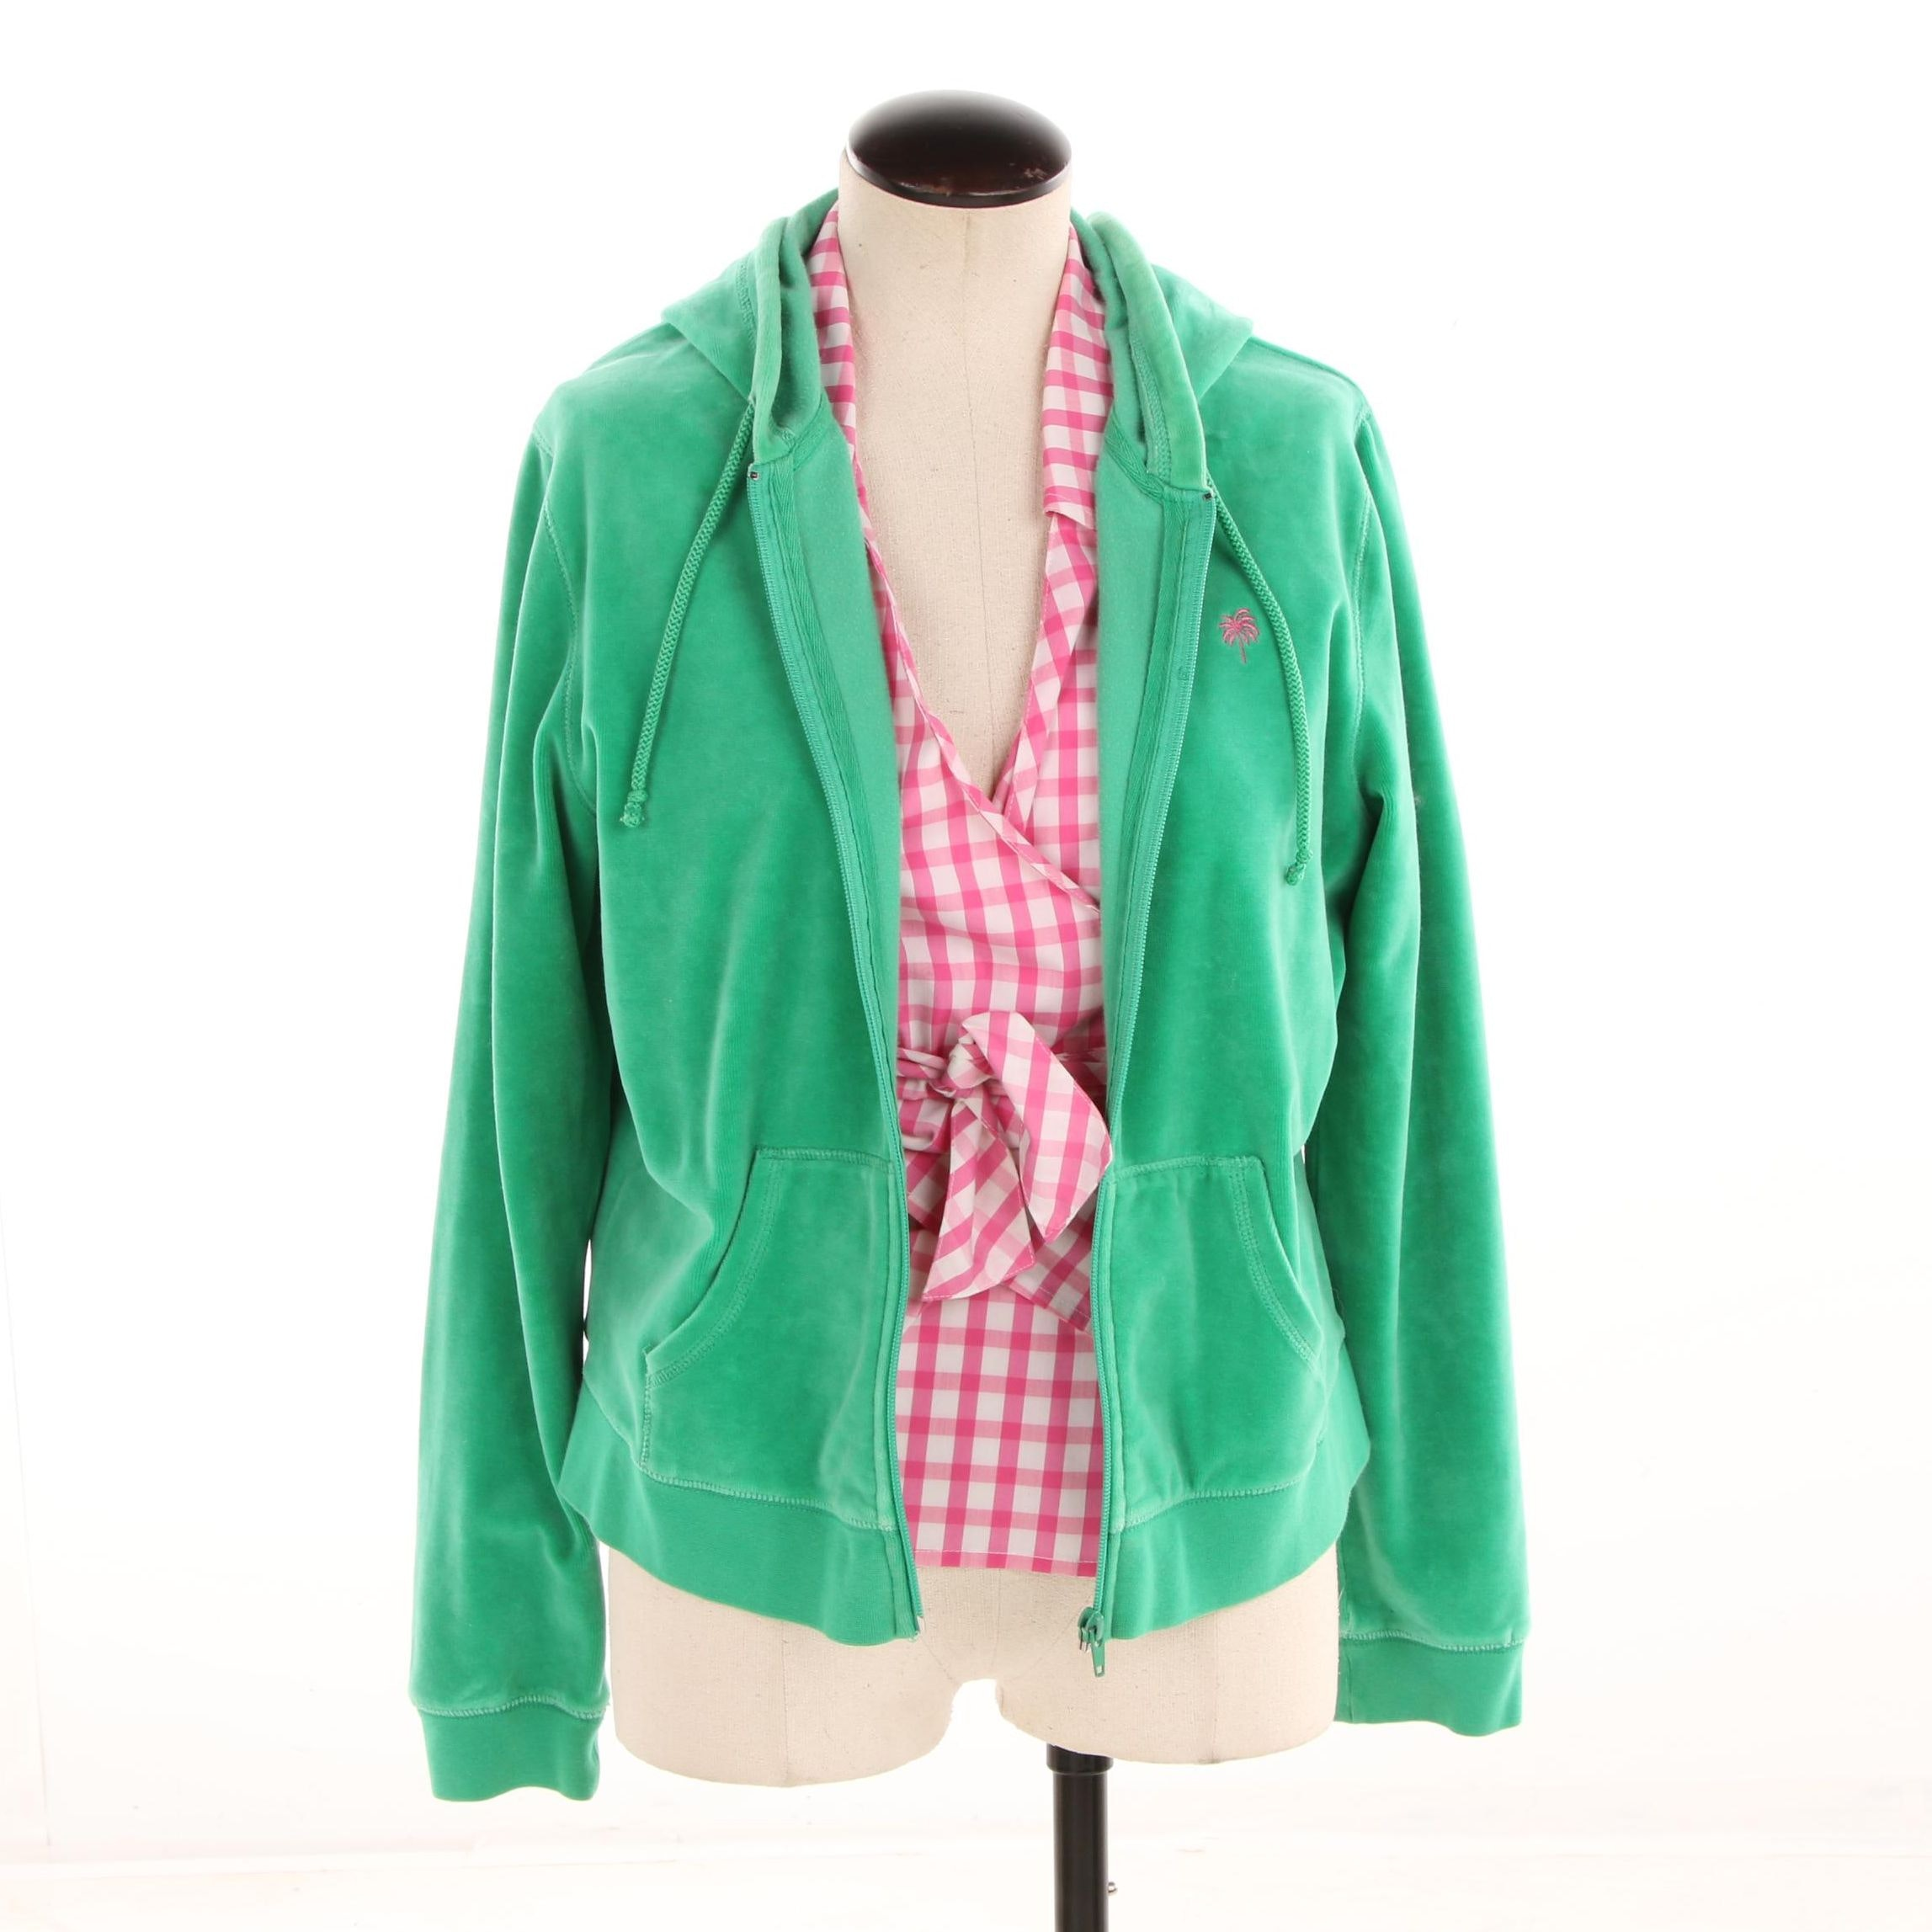 Lilly Pulitzer Green Velour Hoodie and Pink Gingham Sleeveless Wrap Shirt